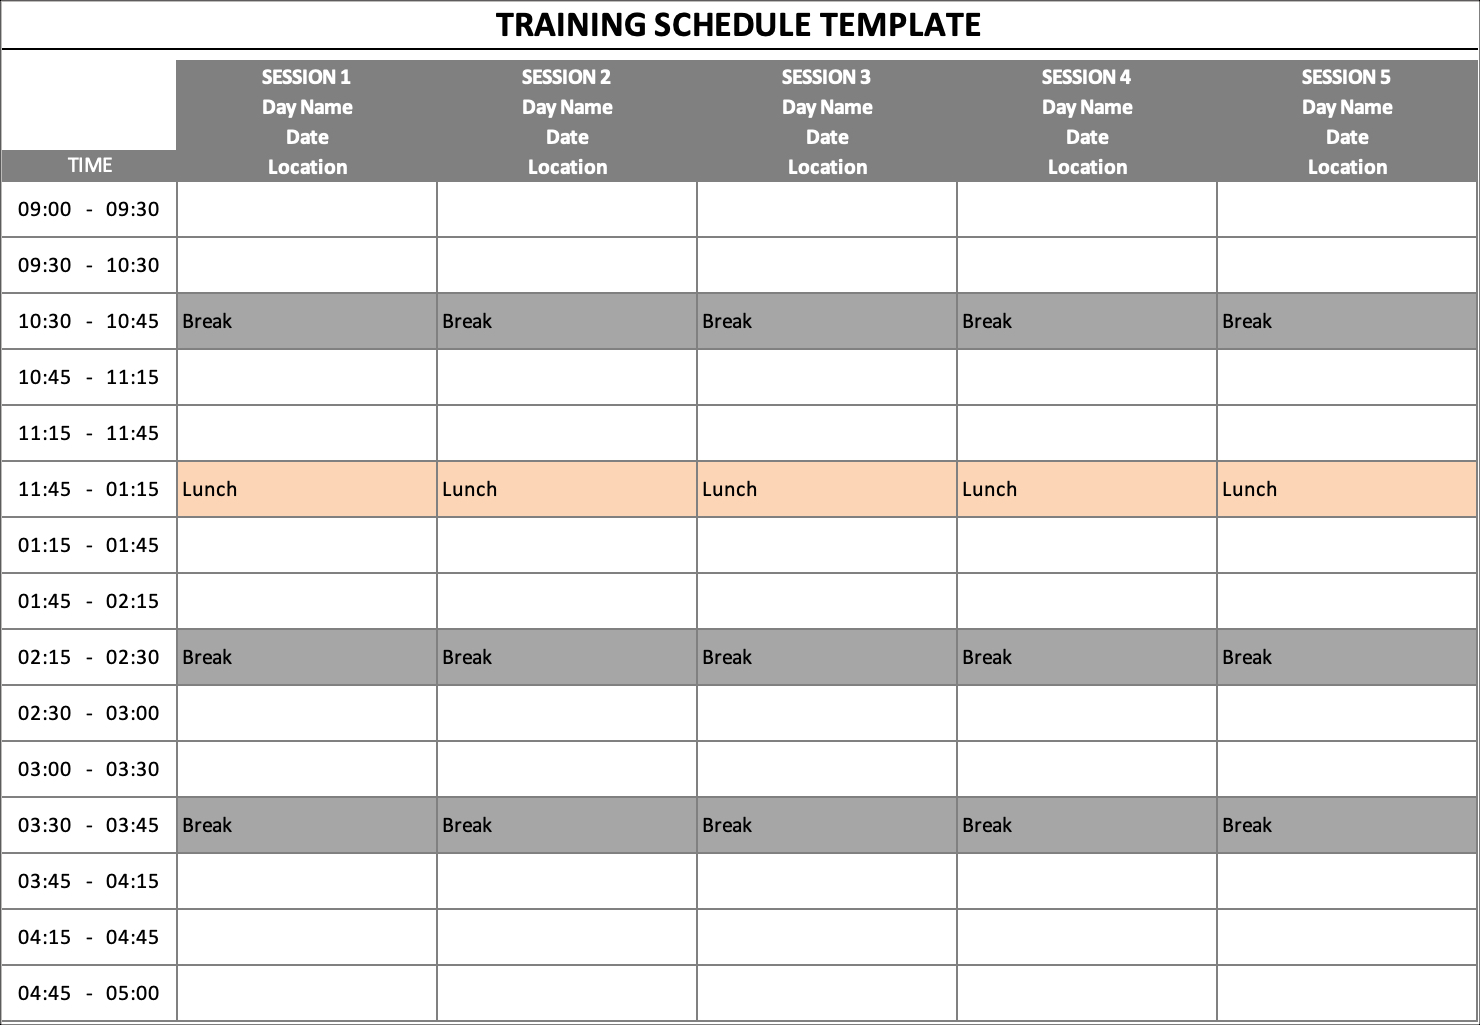 Training Schedule Long Sessions